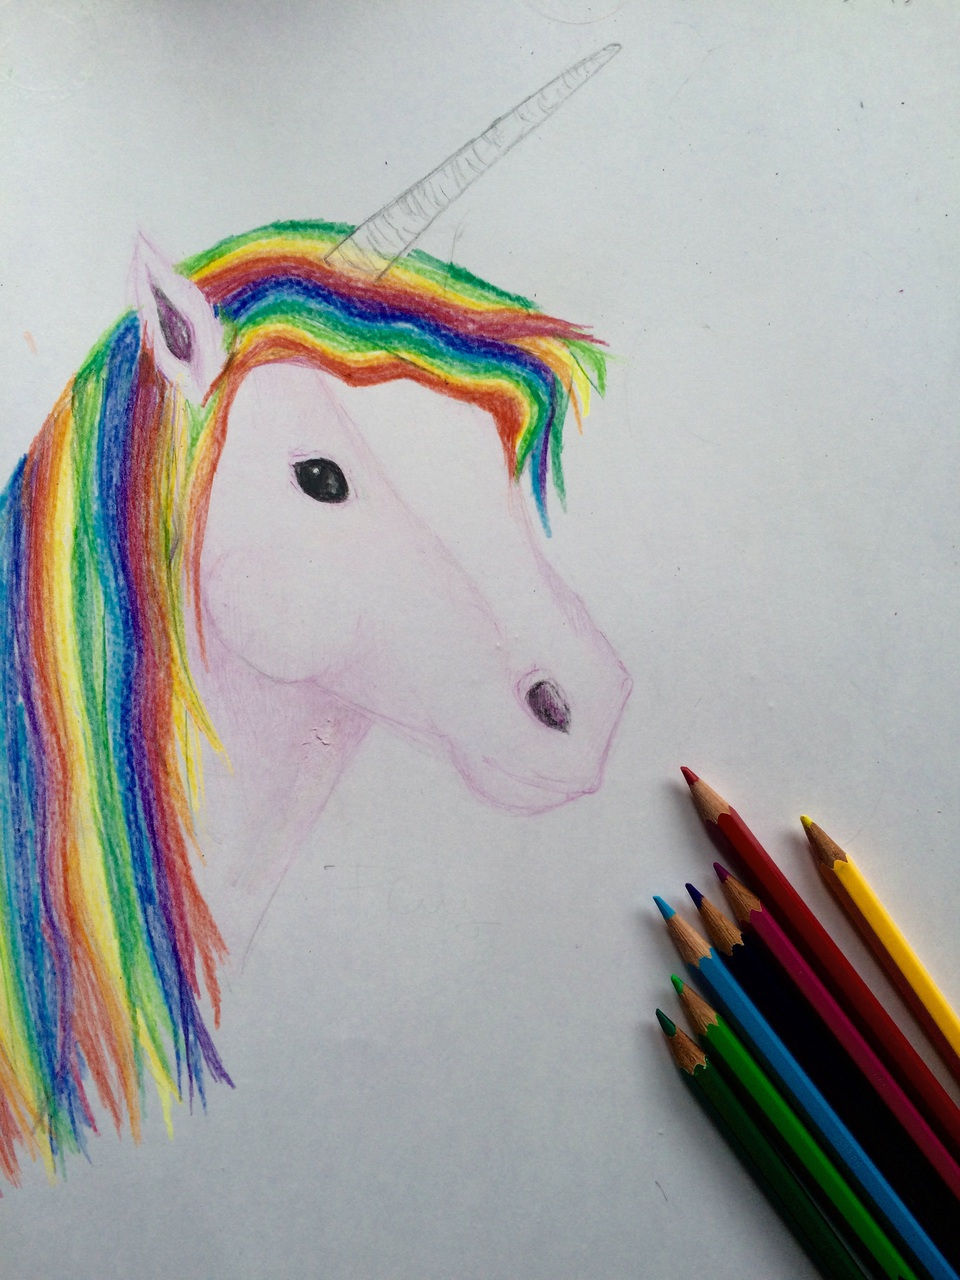 Color Colorful Cute And Draw Image 3357597 On Favim Com